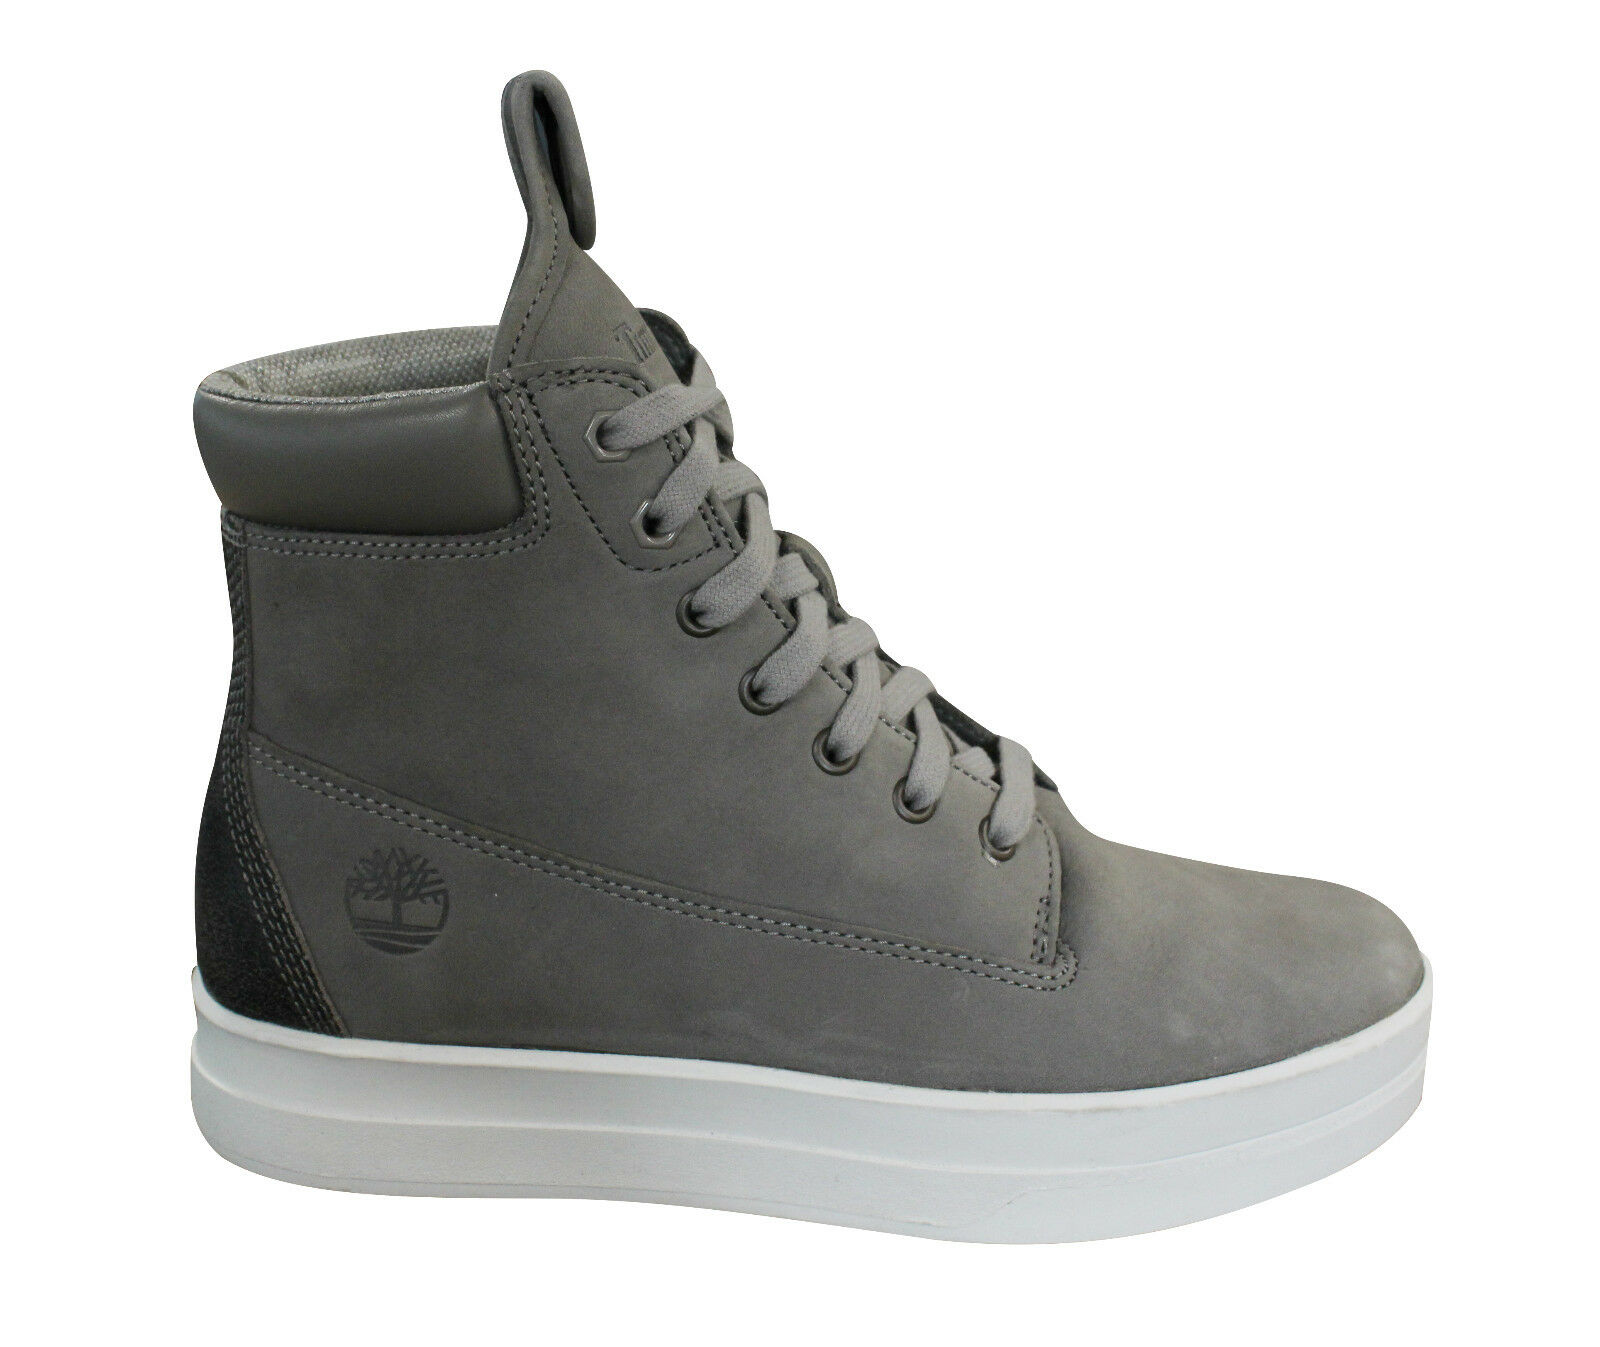 Details about Timberland Mayliss 6 Inch Lace Up Womens Cupsole Trainers Boots Grey A1JIU D4